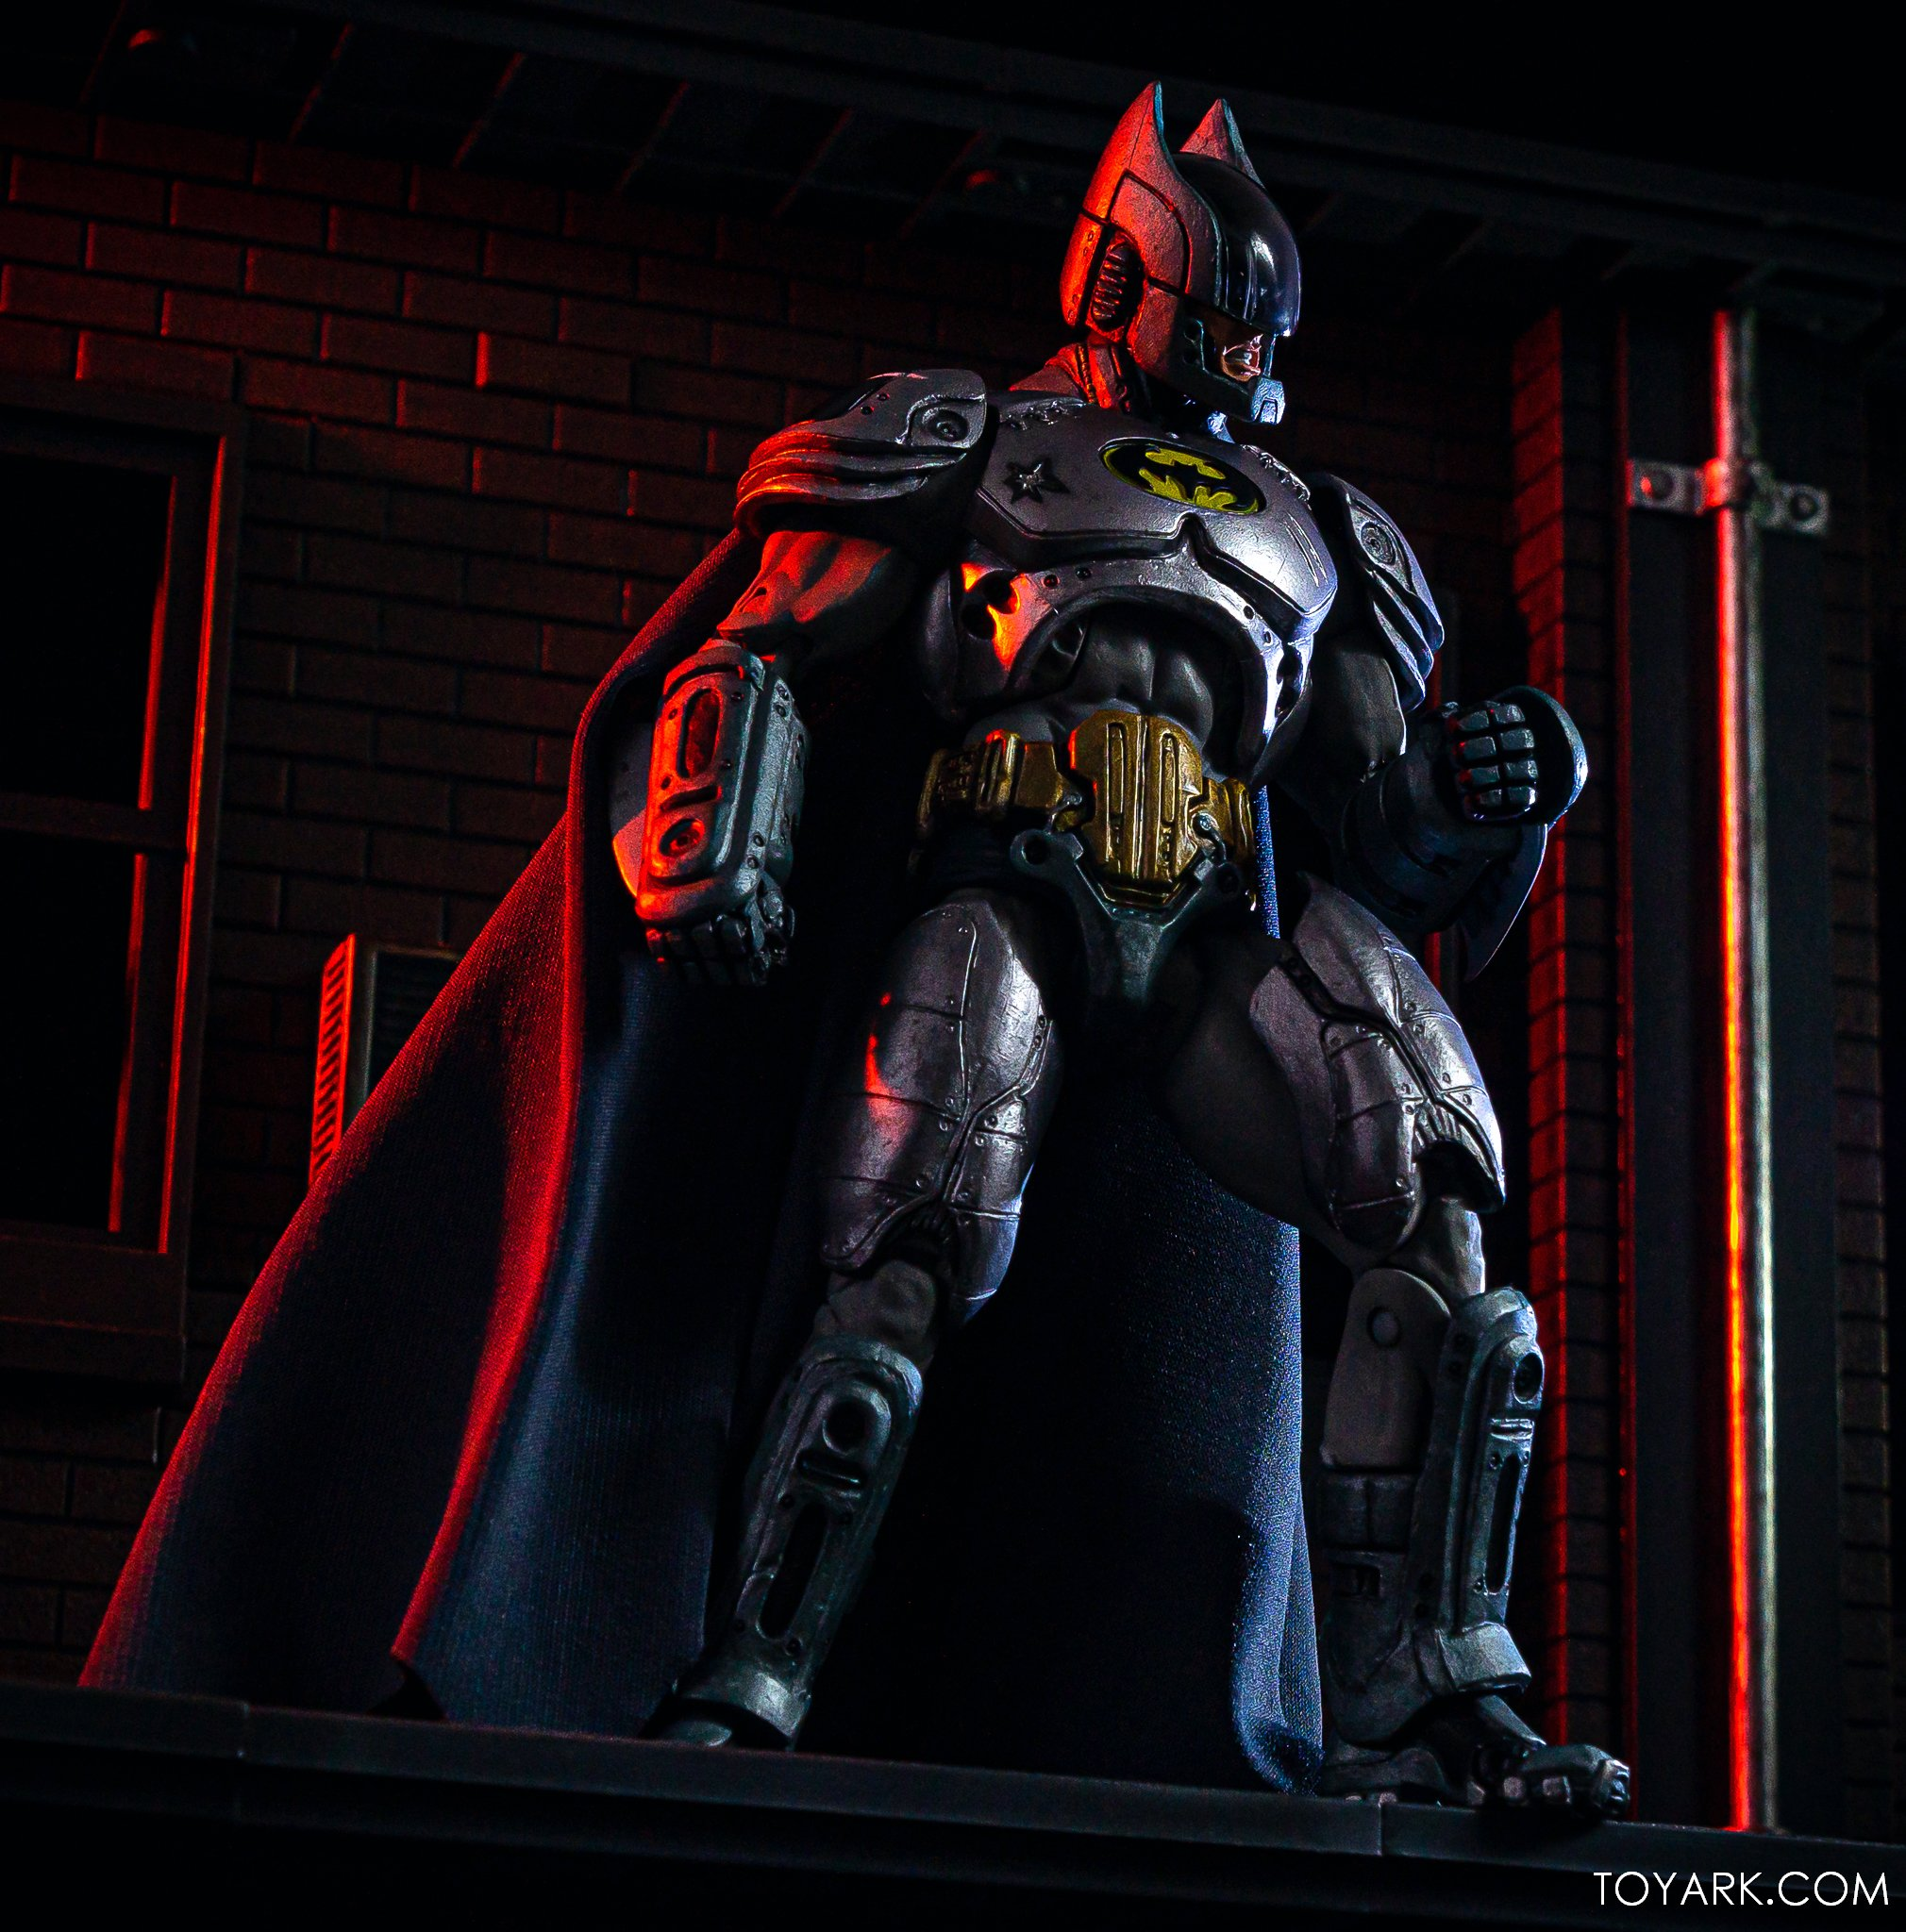 https://news.toyark.com/wp-content/uploads/sites/4/2019/09/Batman-vs-Predator-Set-014.jpg